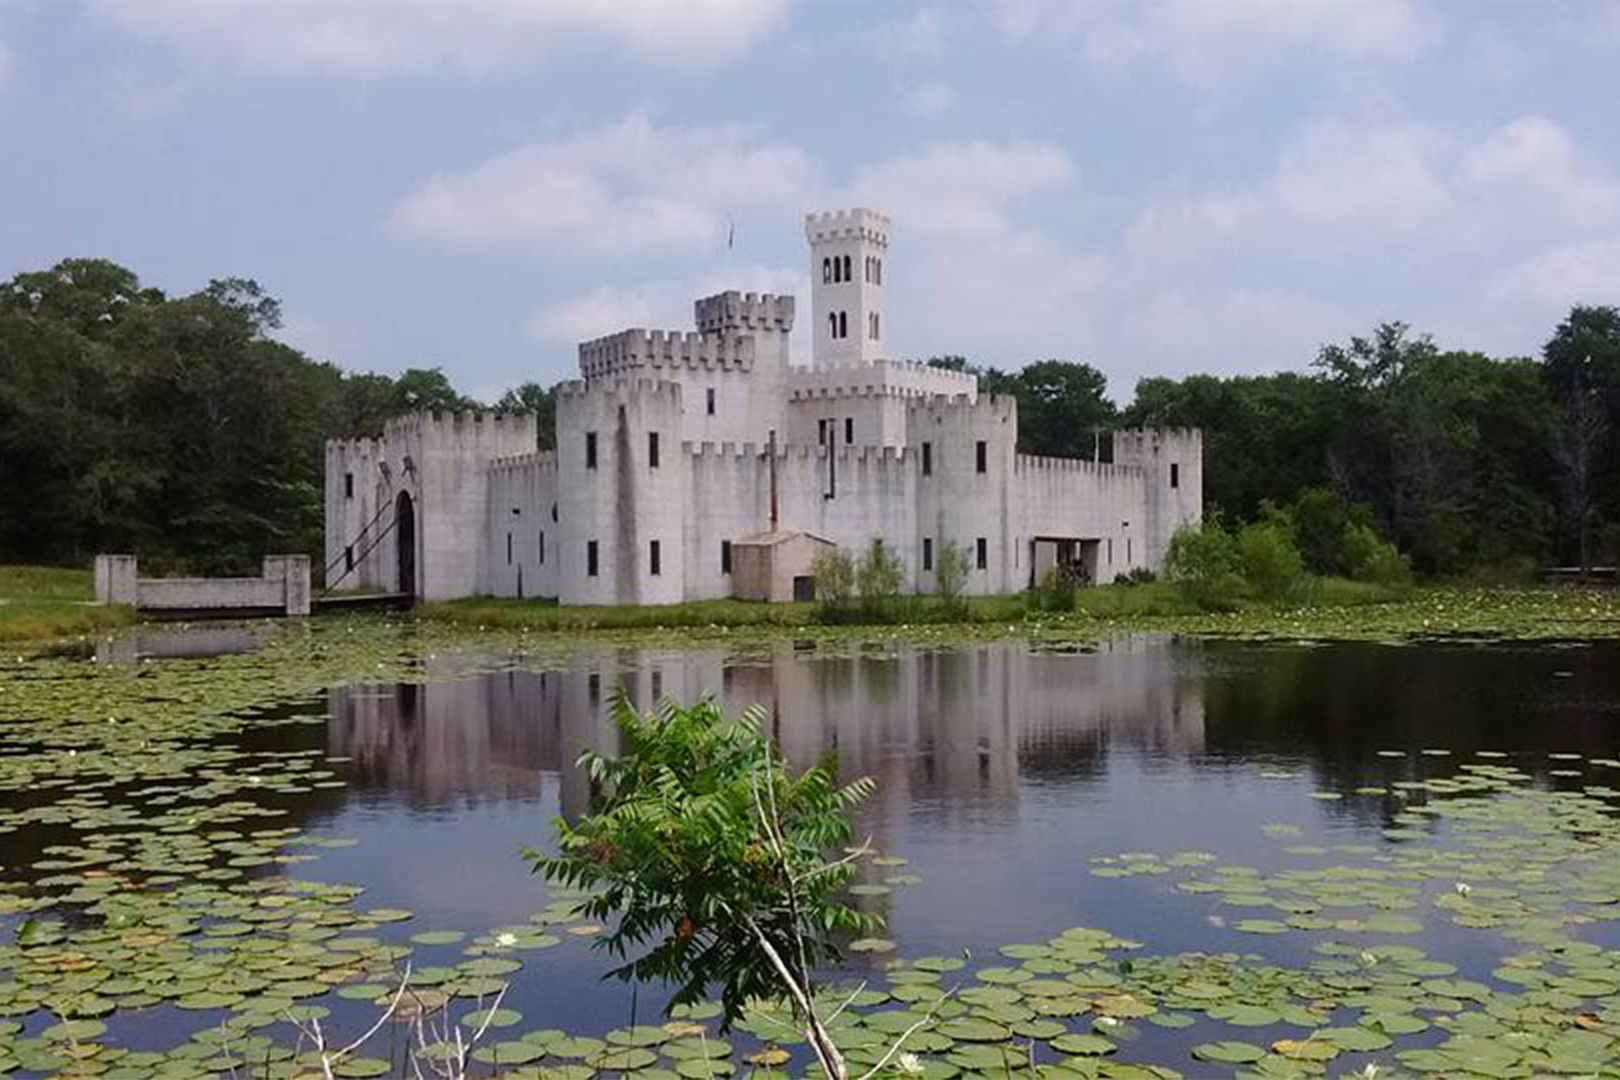 Tour a Real Castle in the Middle of the Texas Countryside